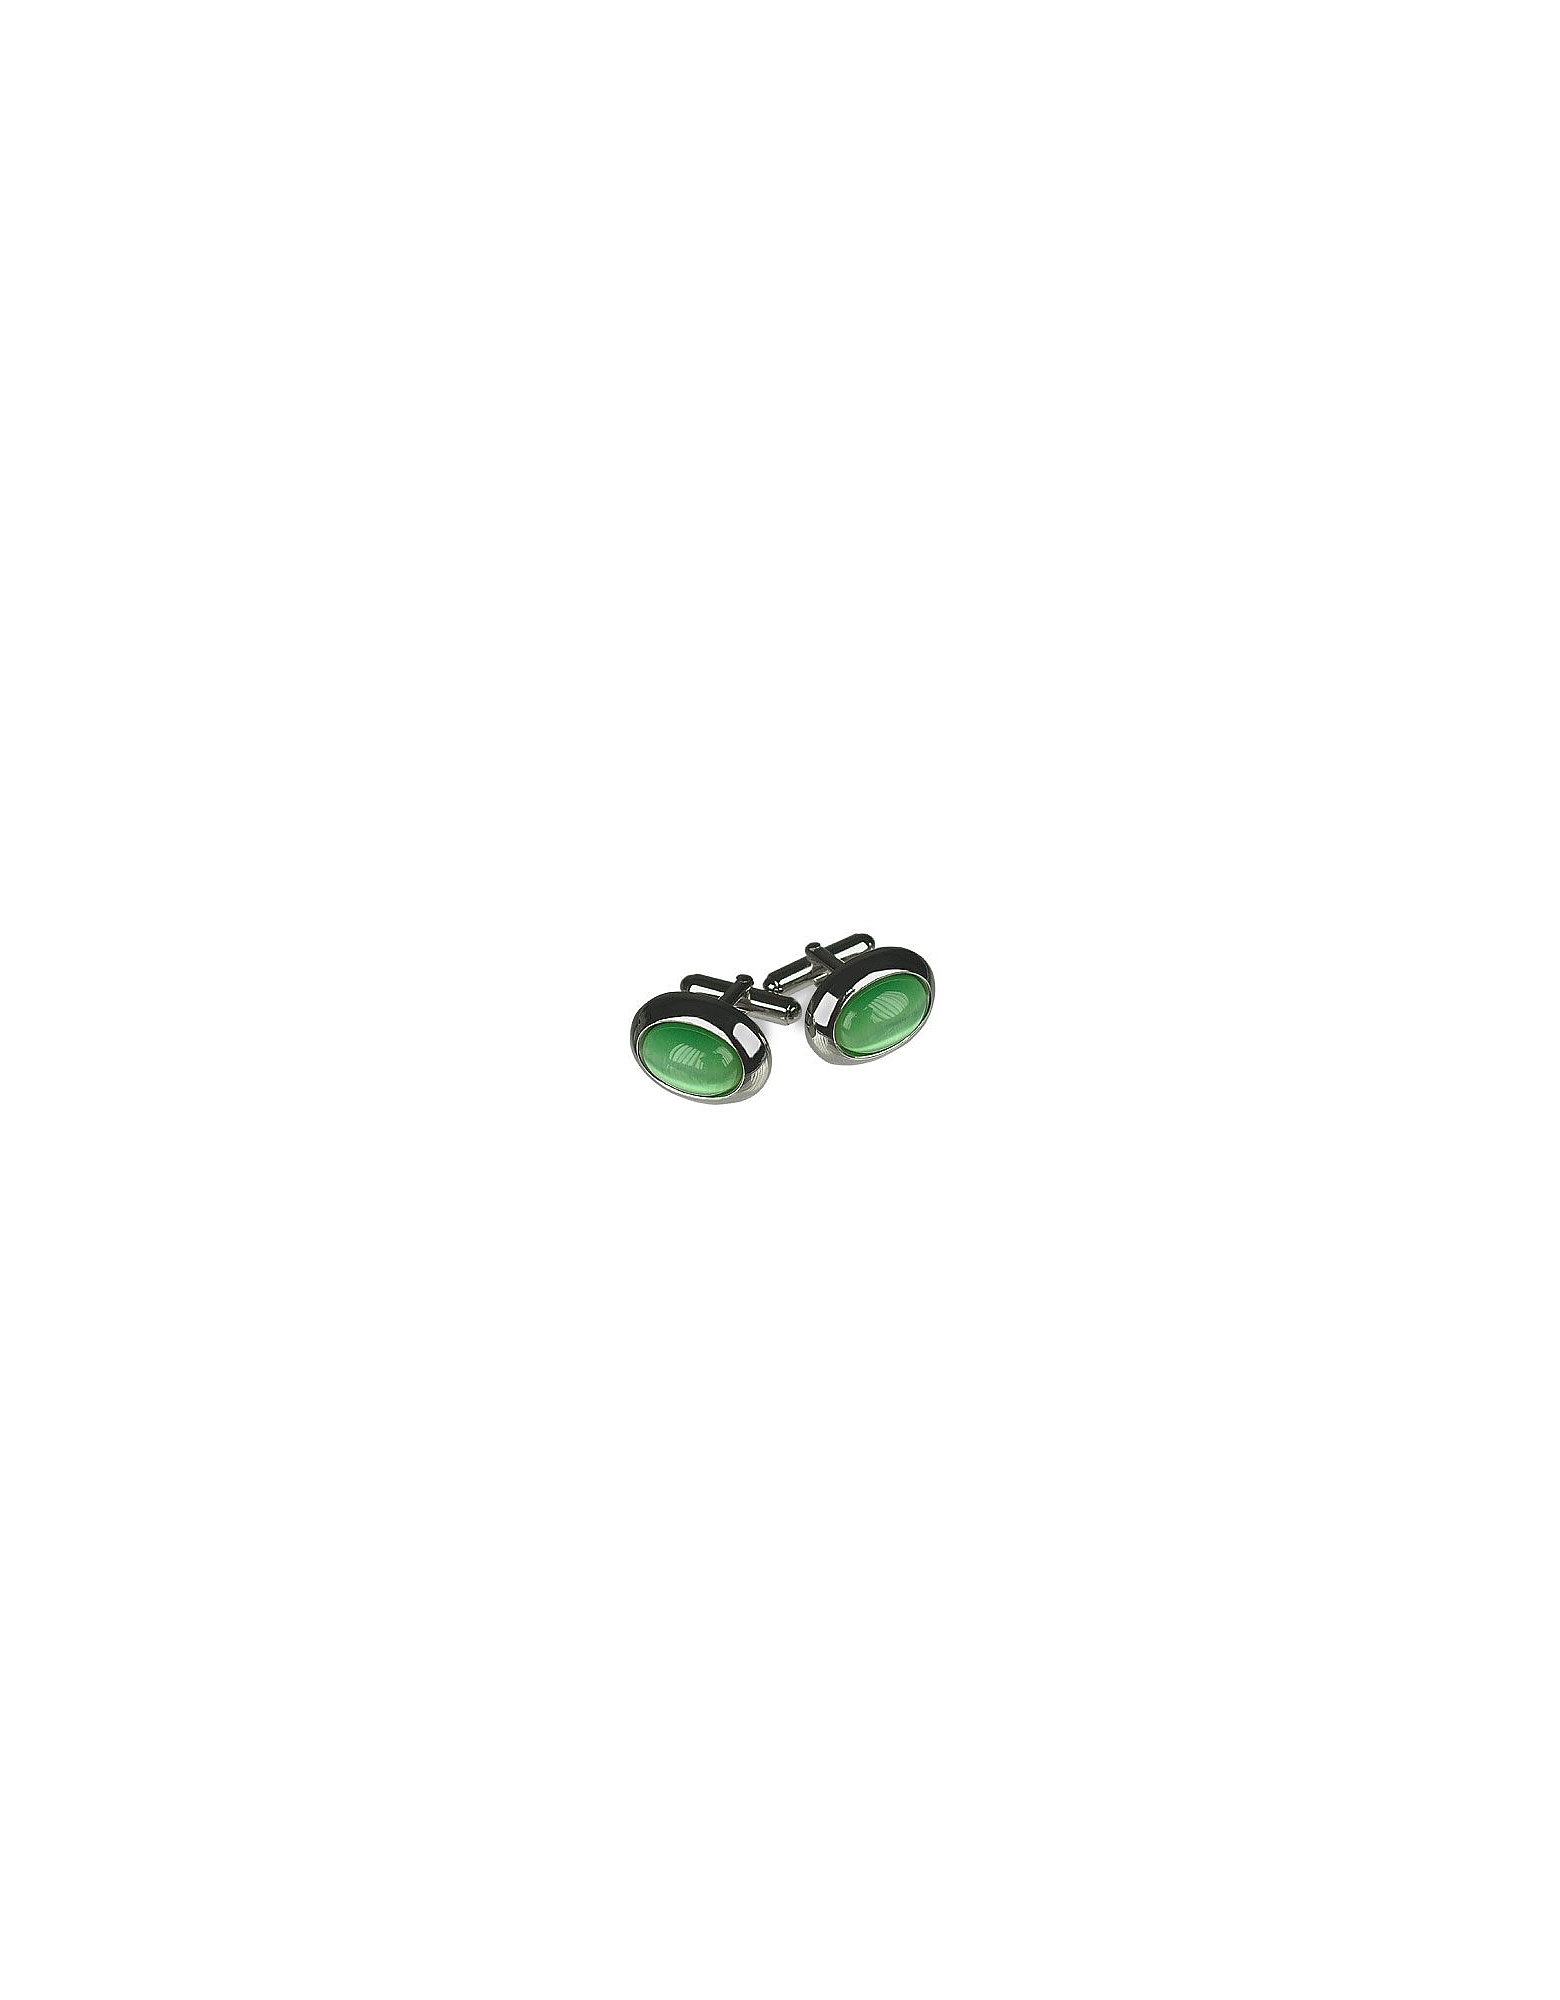 Cat's eye - Gemelli in argento placcato ovali